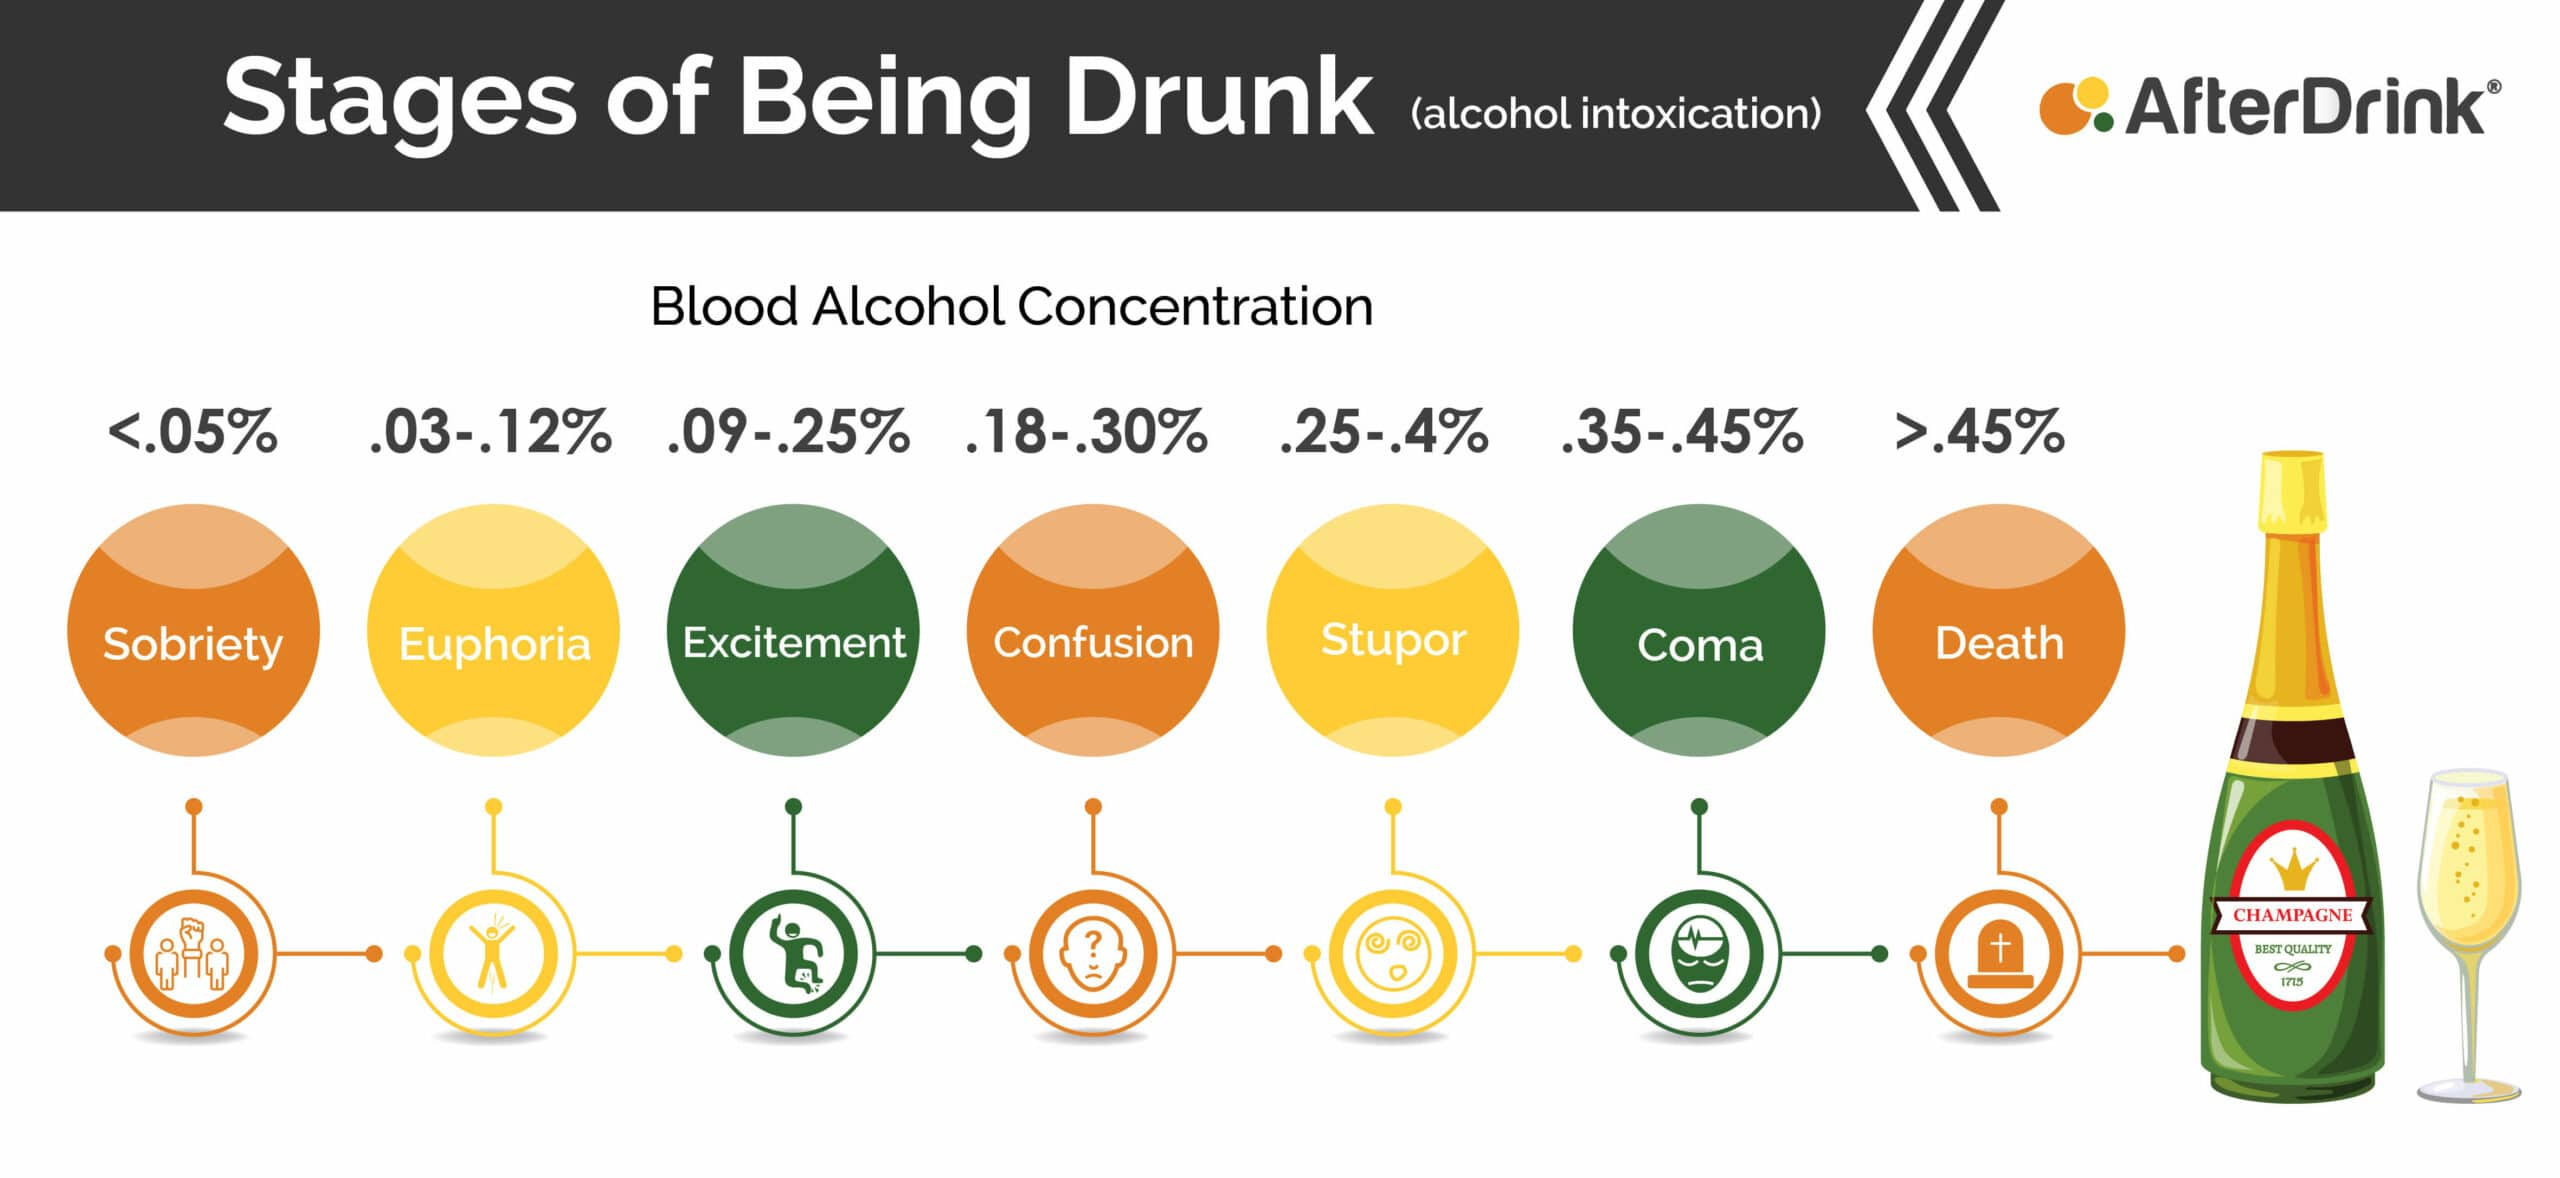 stages of being drunk infographic